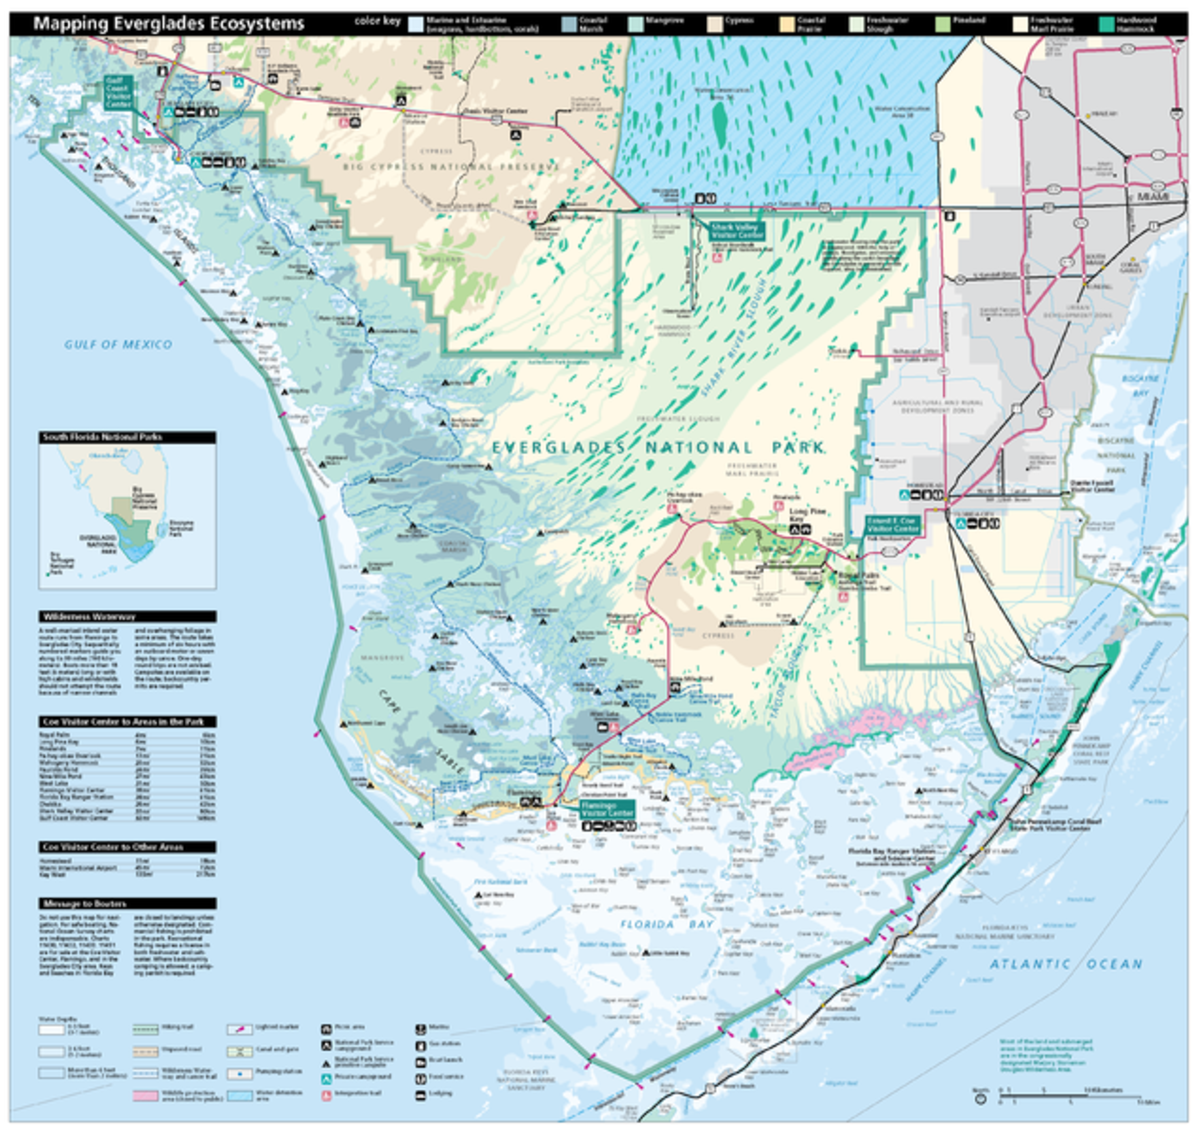 A map of the Everglades.